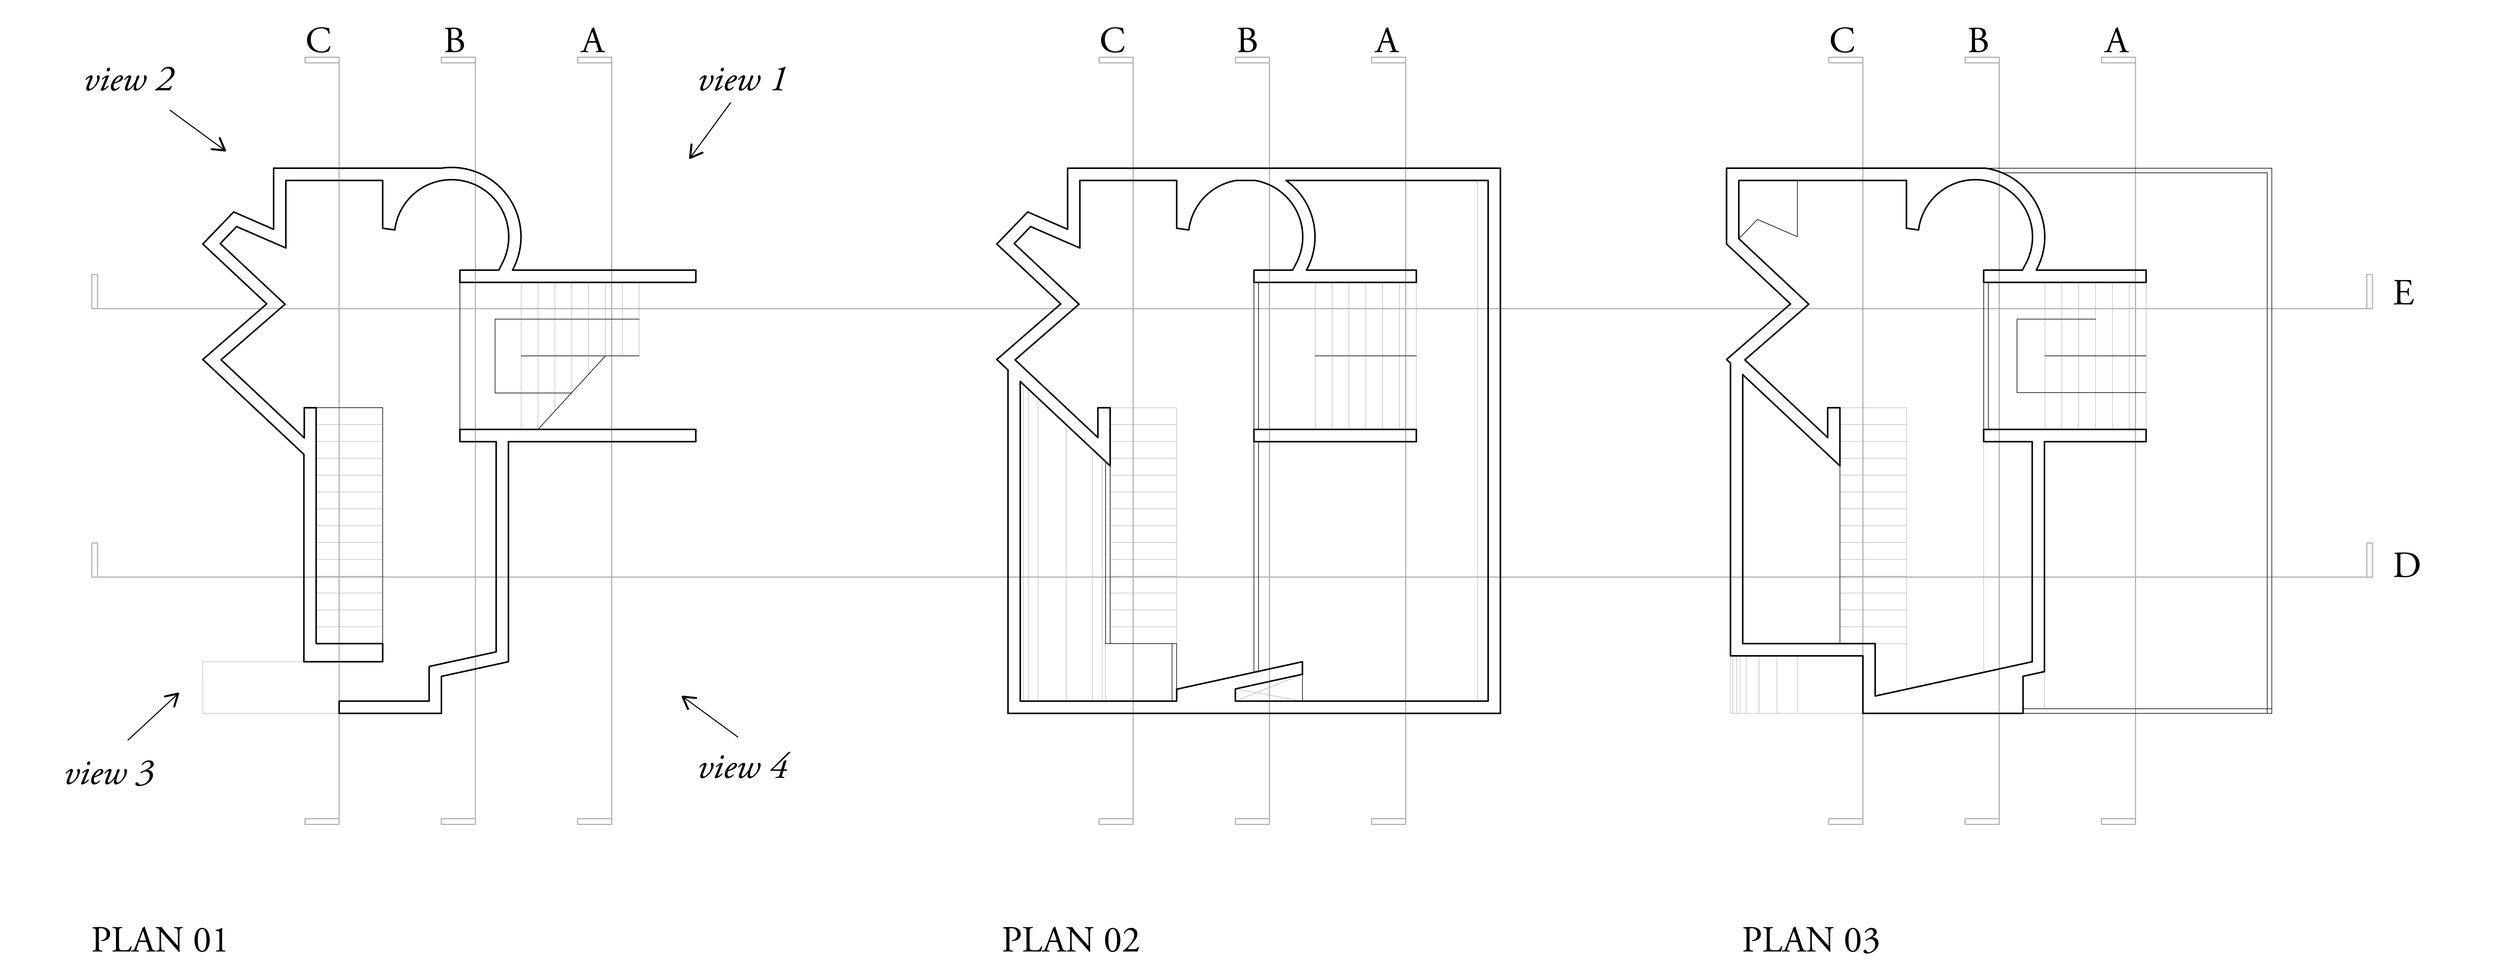 Plans and Section.jpg